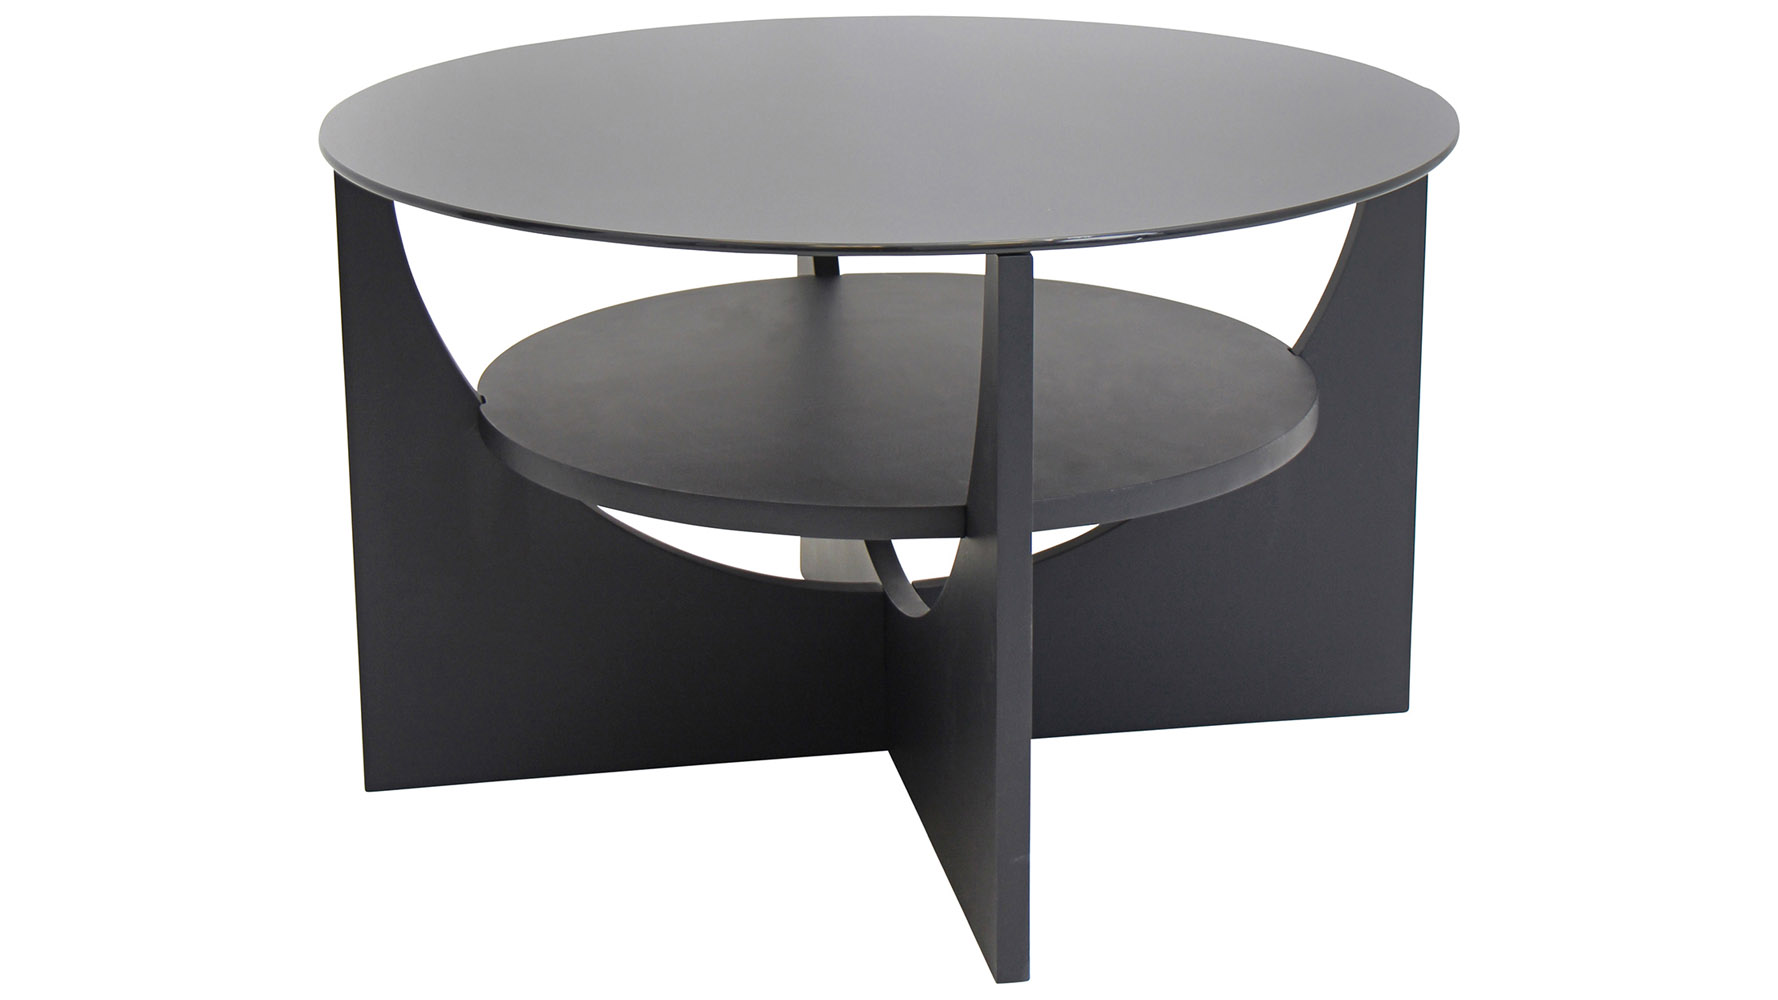 globus coffee table zuri furniture. Black Bedroom Furniture Sets. Home Design Ideas